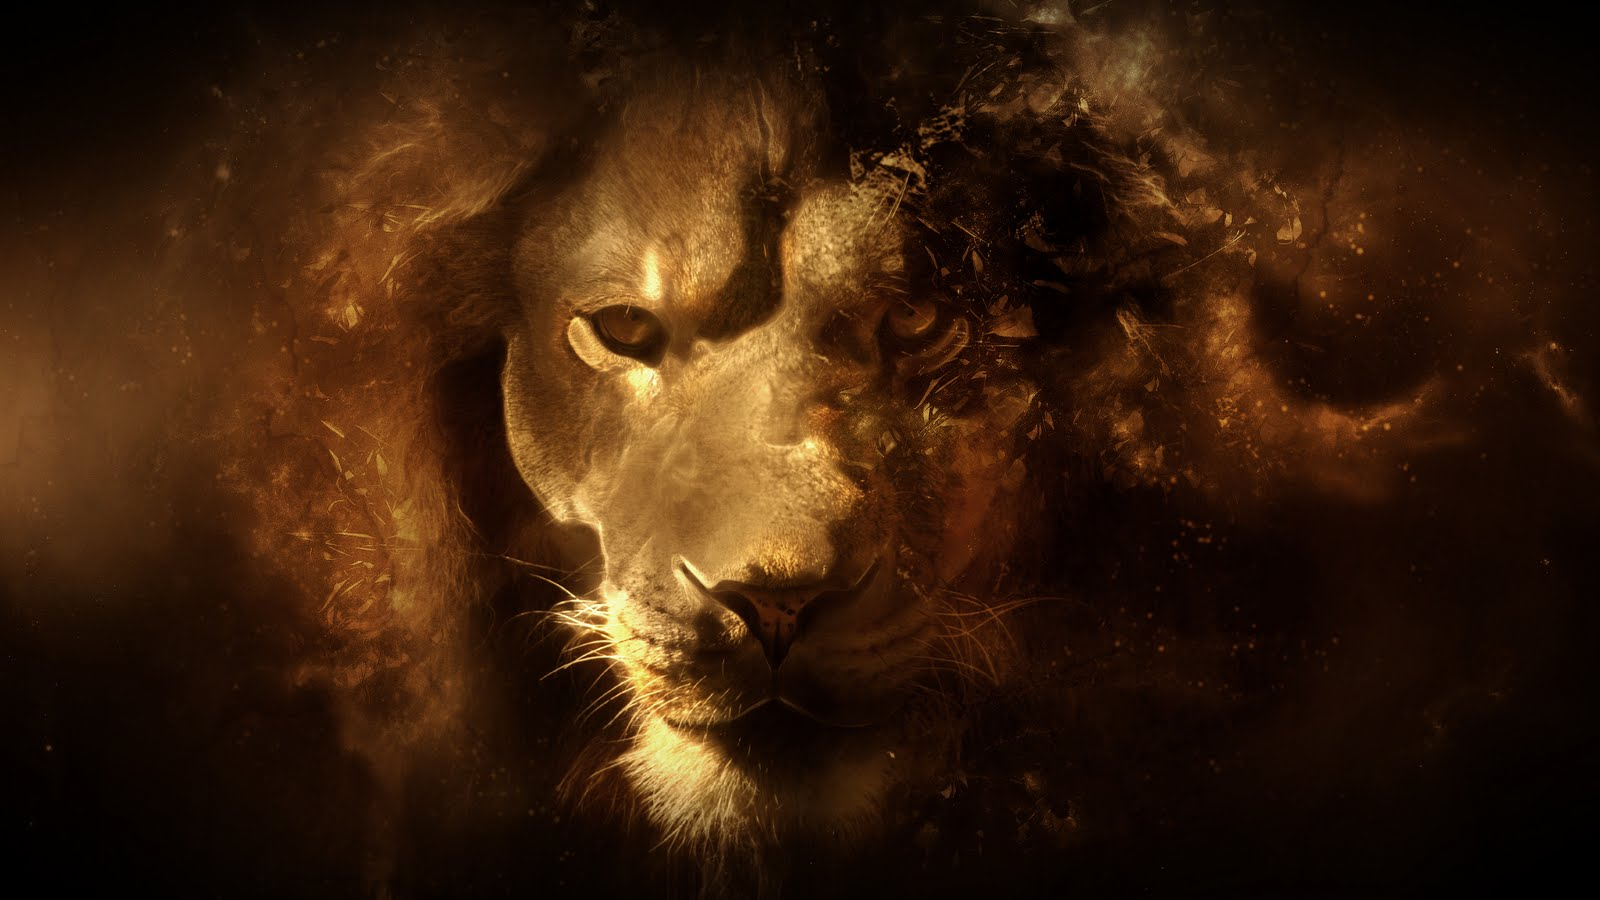 lion hd wallpaper